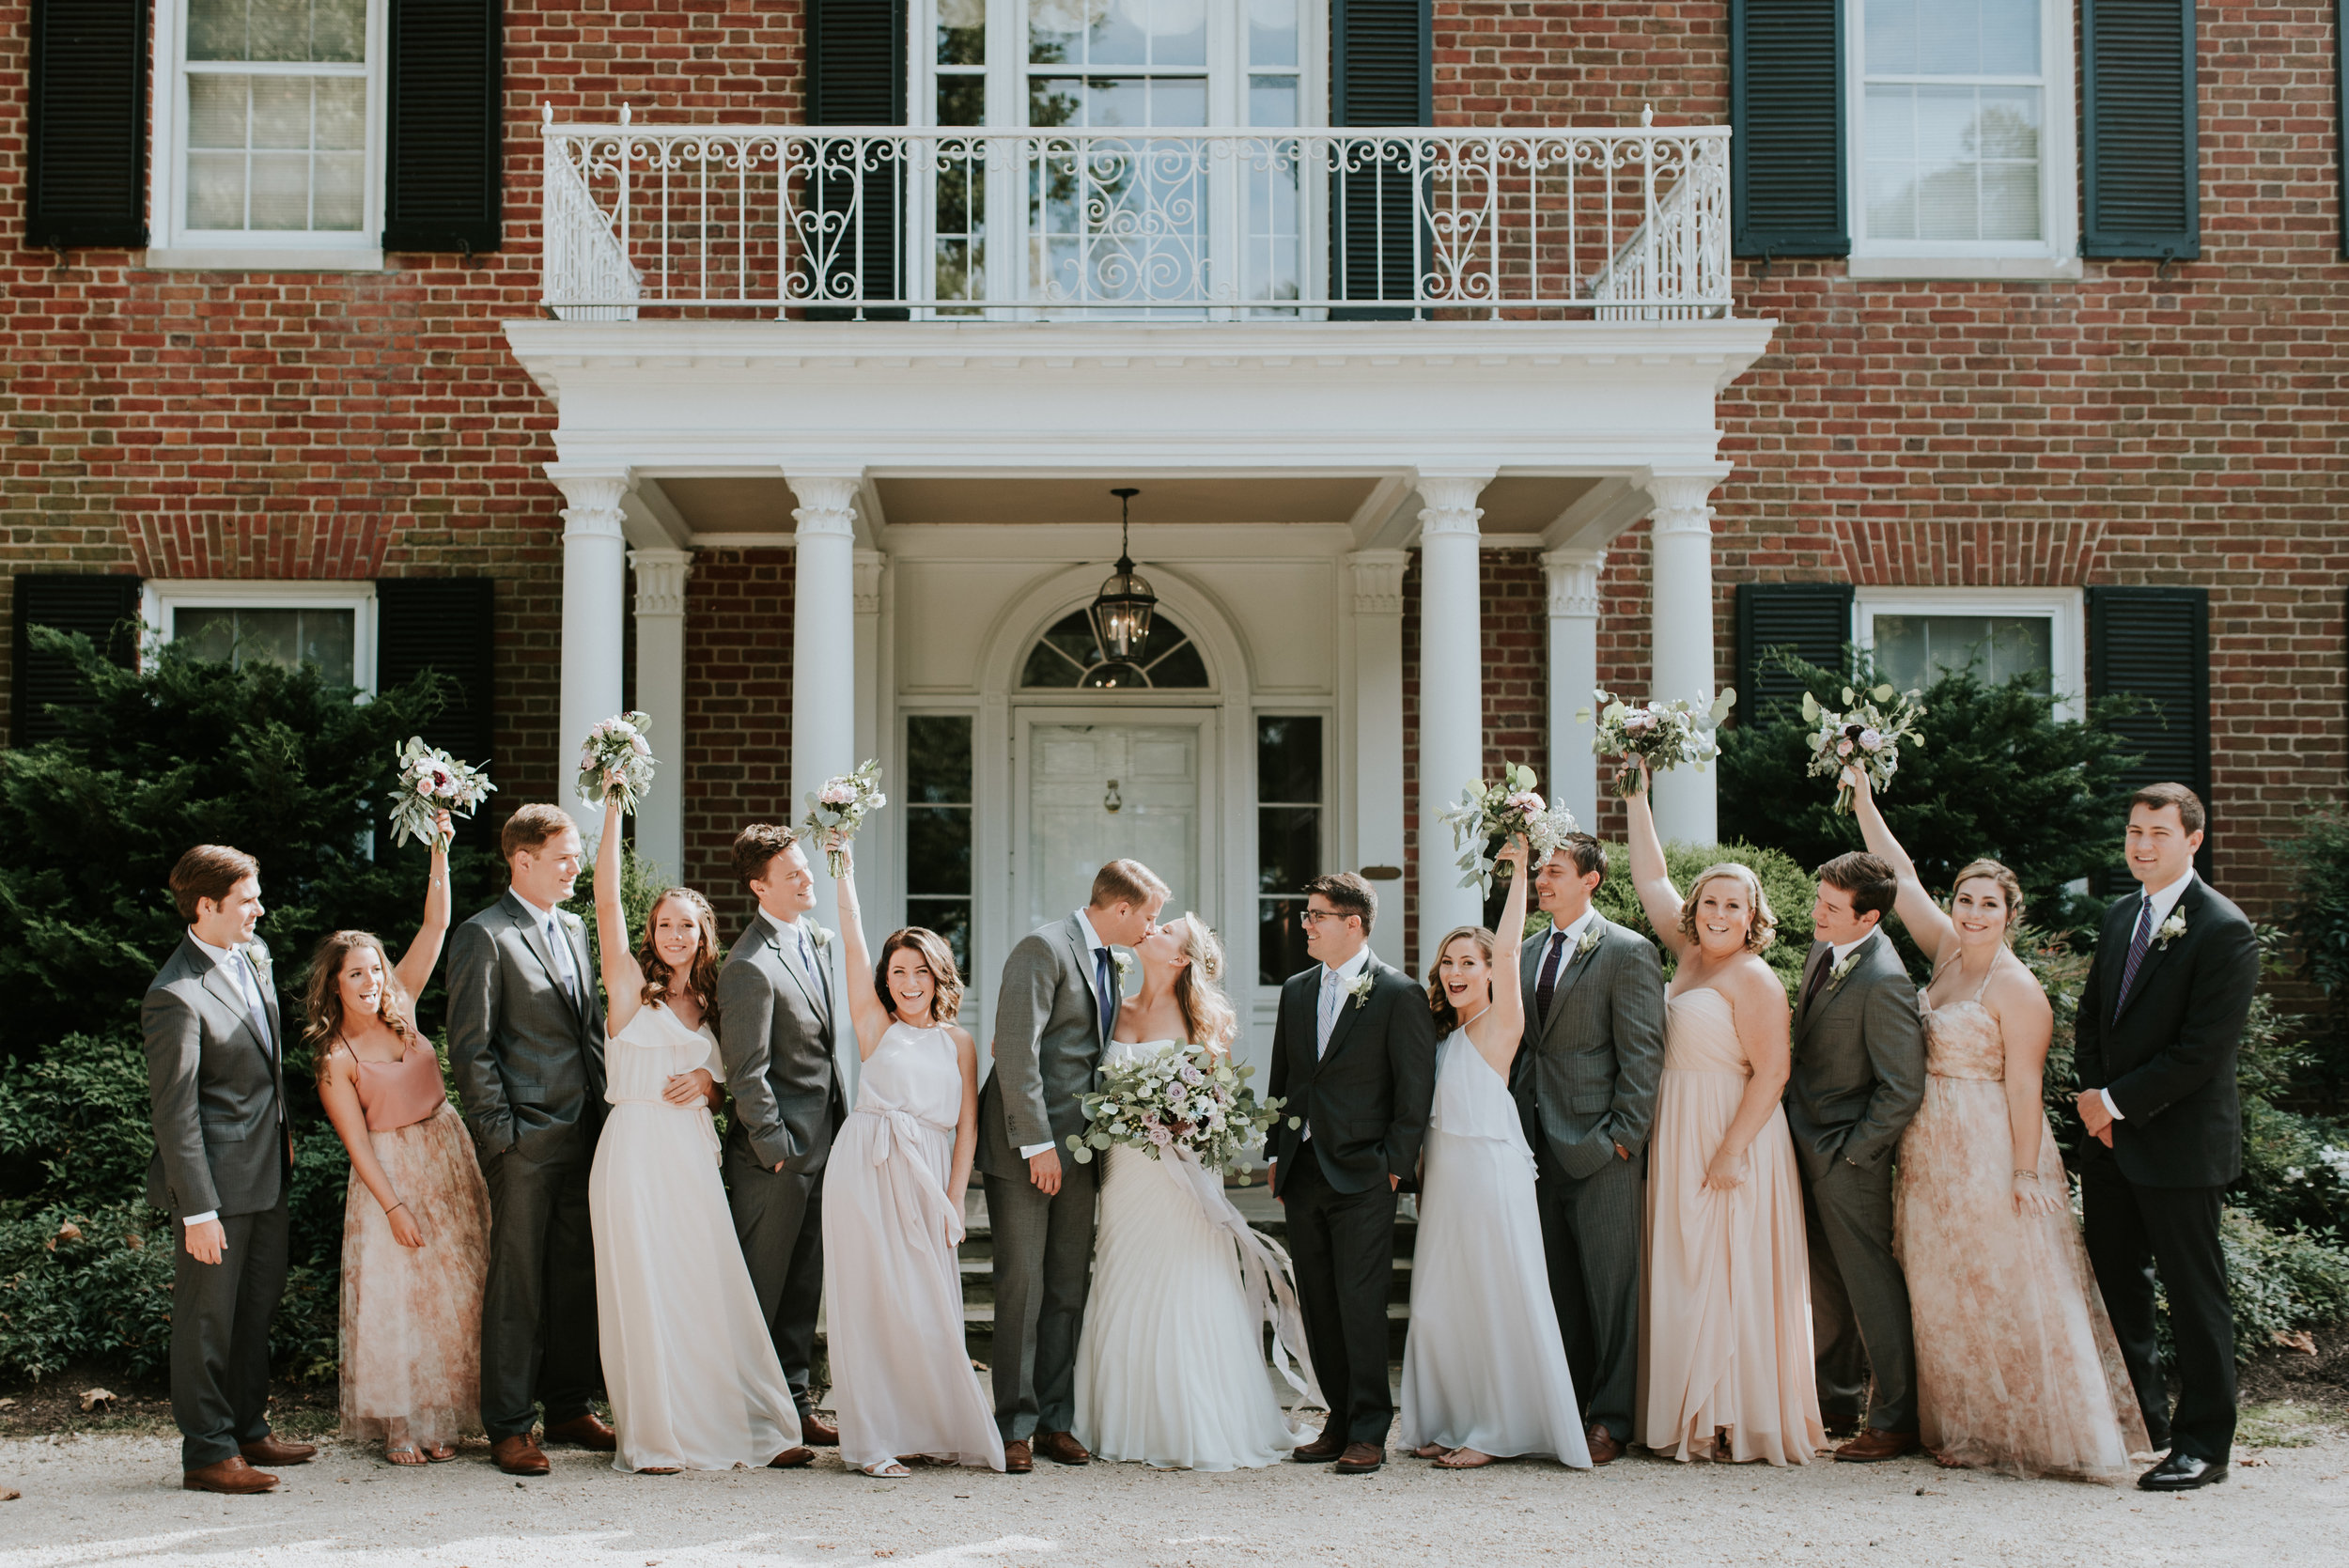 Rustic Oyster Themed Eastern Shore Maryland Outdoor Wedding by East Made Event Company Wedding Planner and Bekah Kay Creative318.jpg